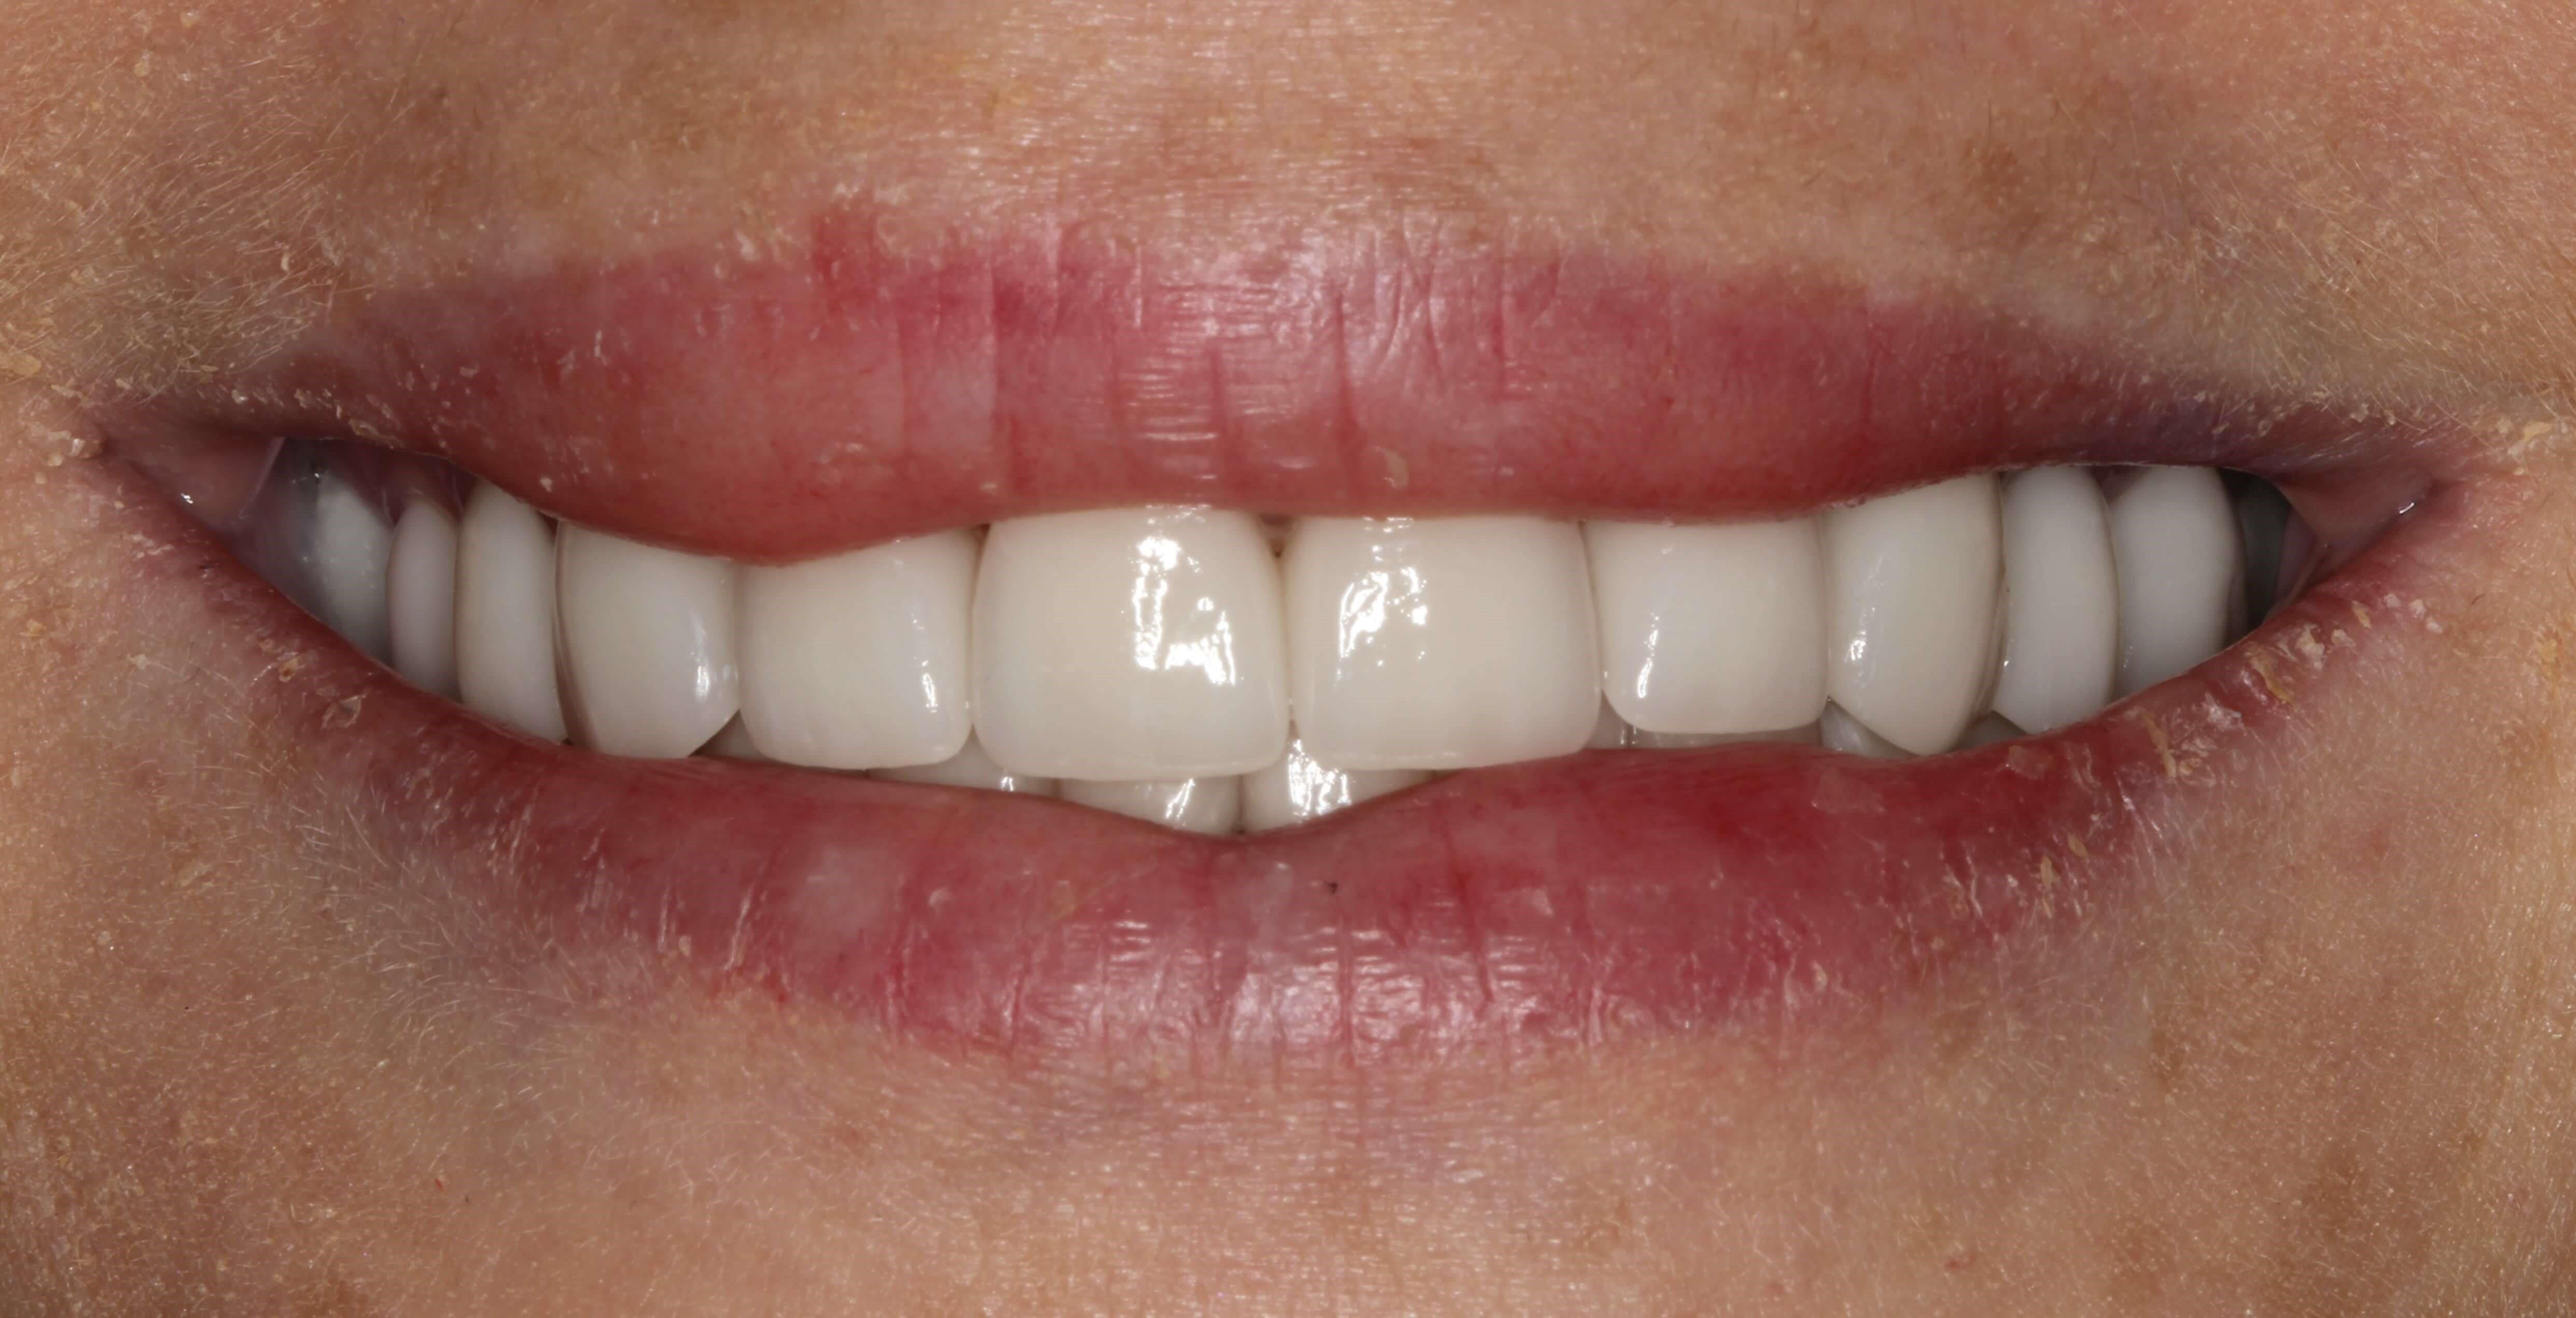 Veneer Replacement at SmilesNY After